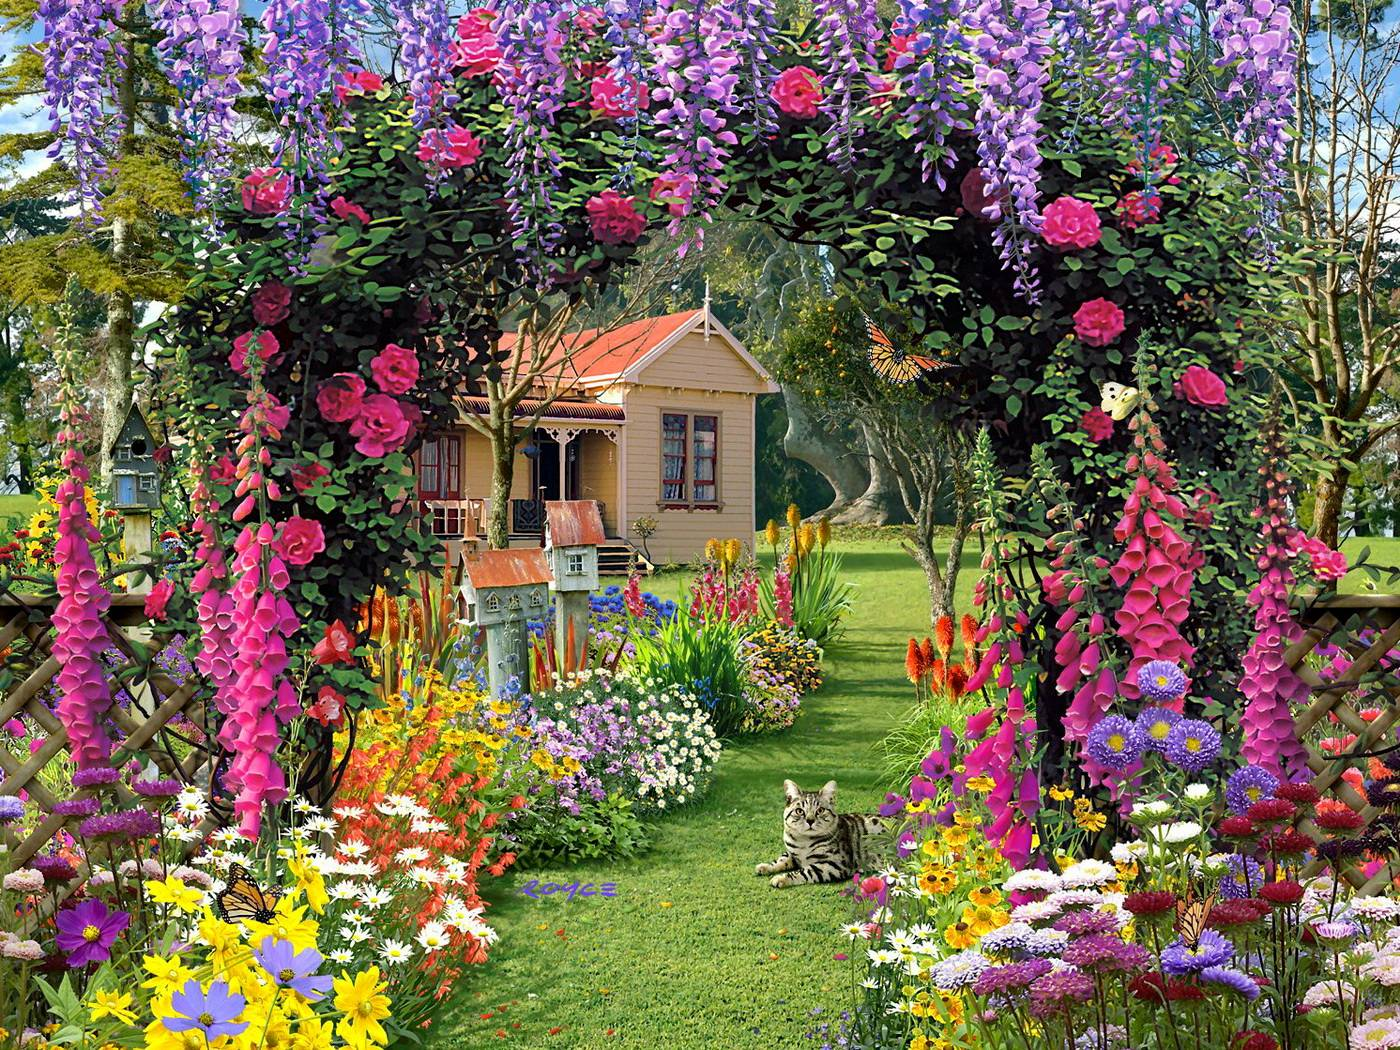 Flower Garden Wallpaper Background flower garden backgrounds - wallpaper cave